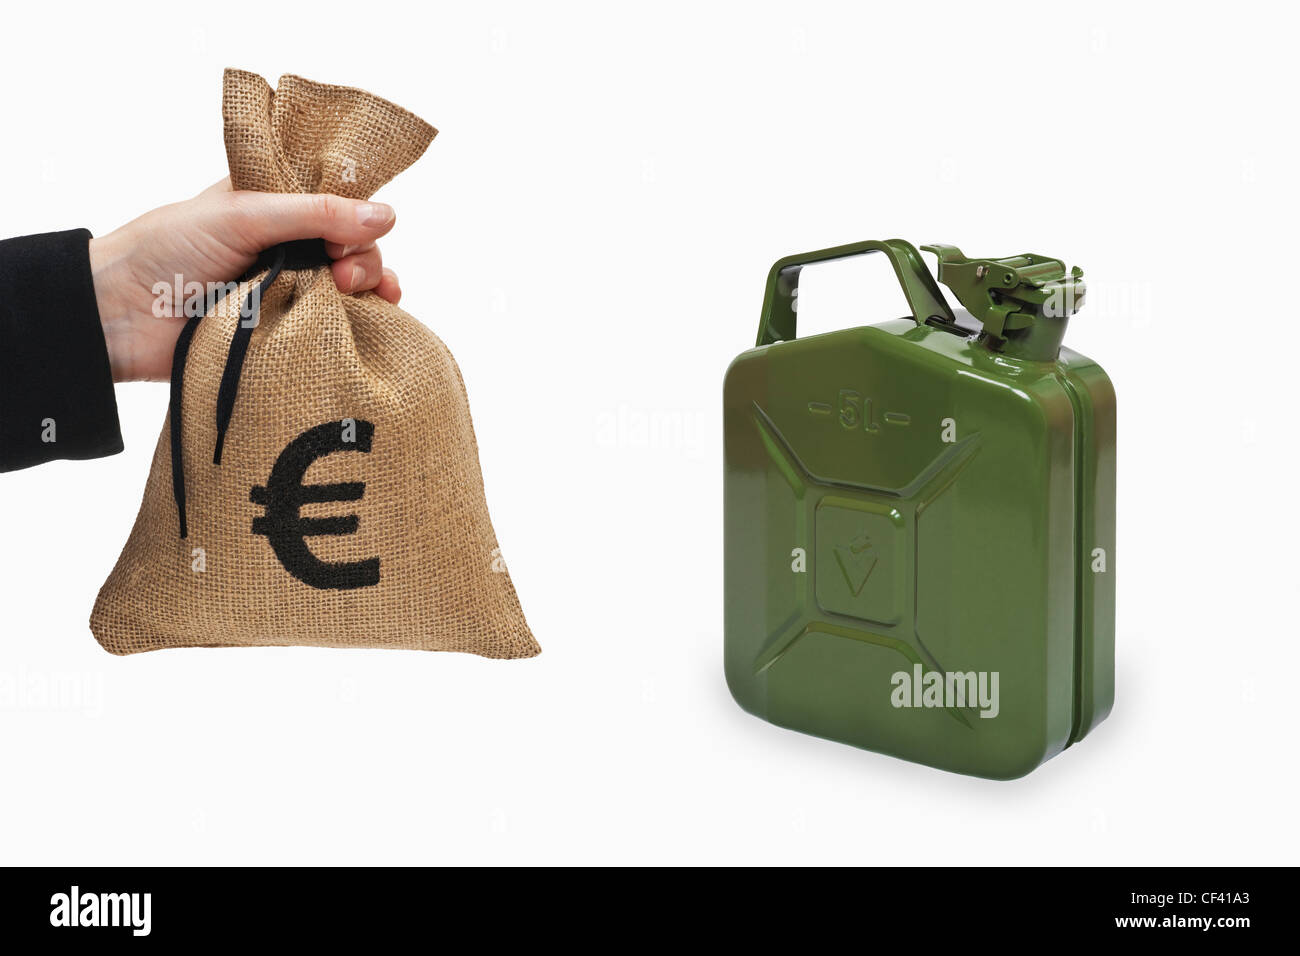 A money bag with a Euro currency sign is held in the hand. Near by is a green 5 liters gasoline canister of metal. - Stock Image